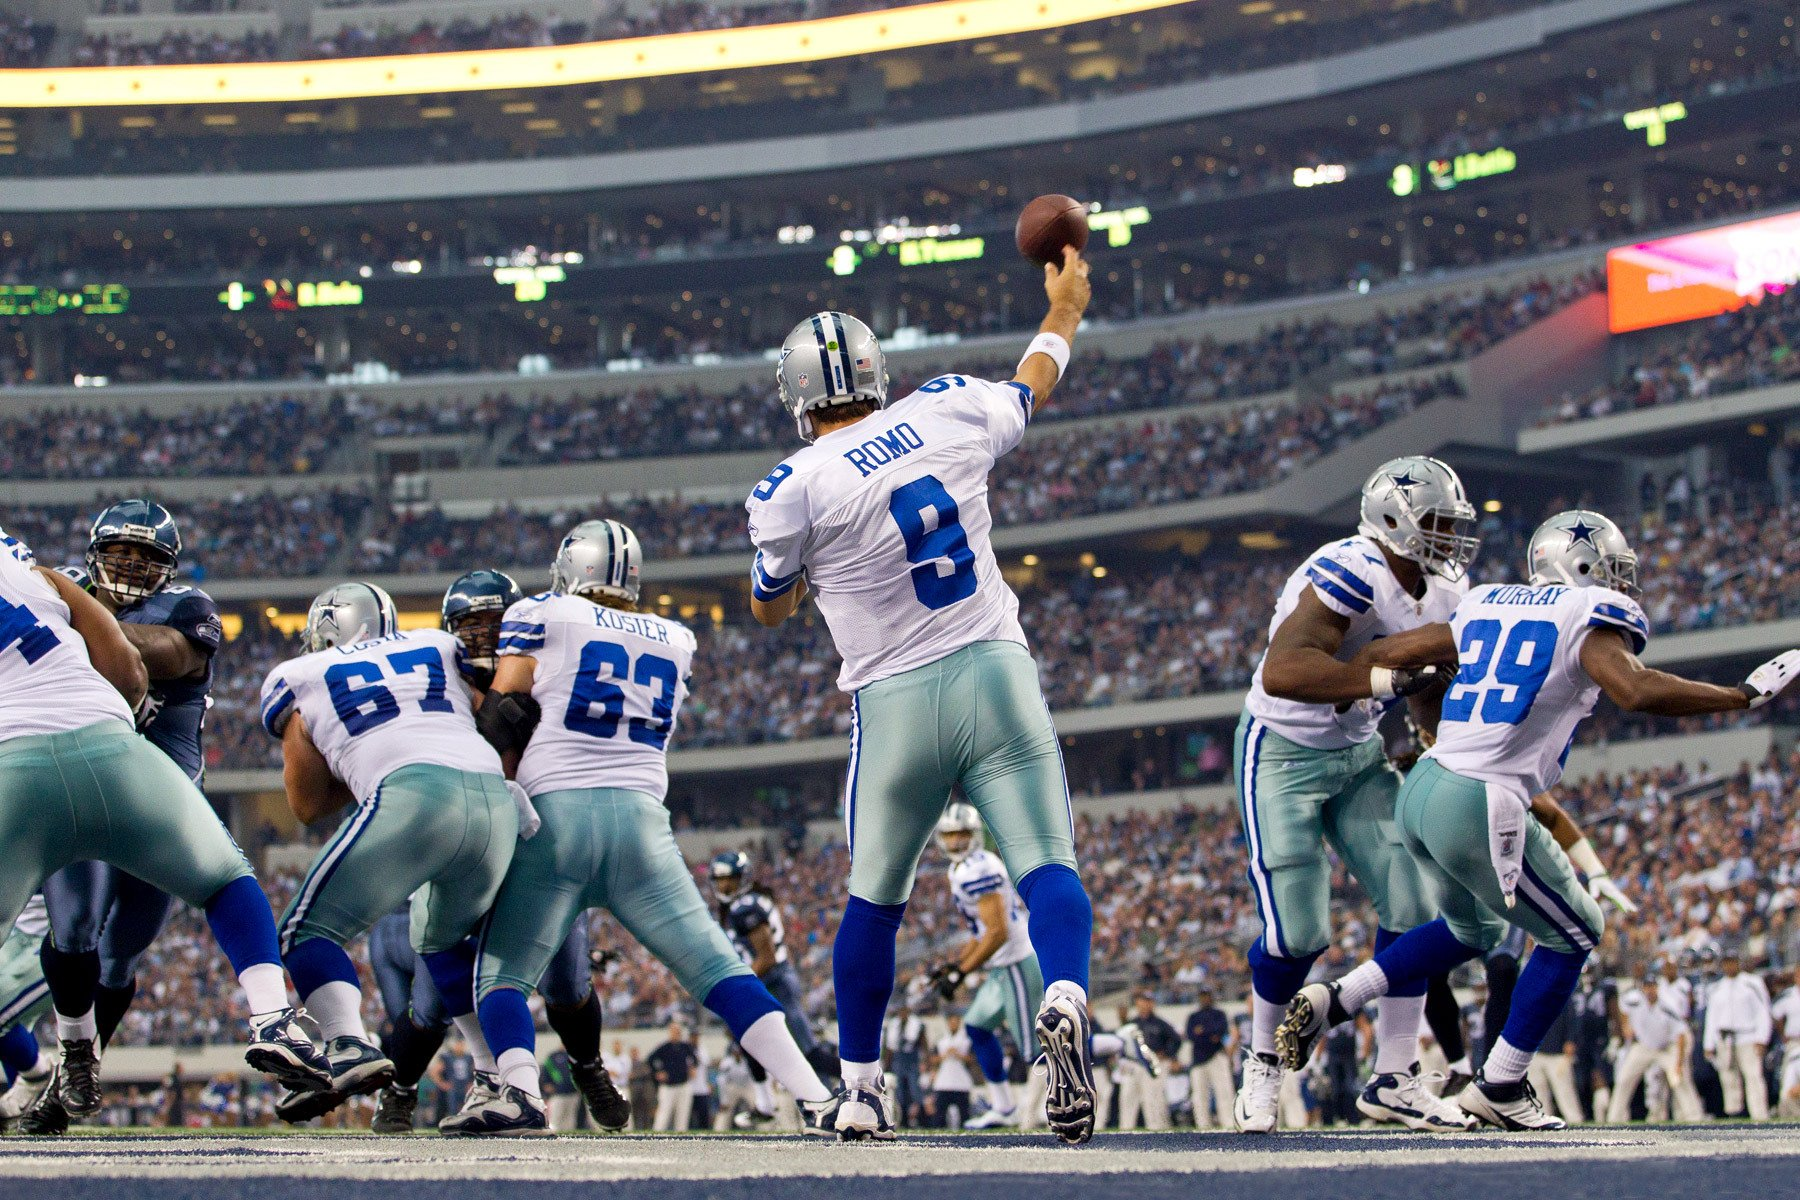 NFL Dallas Cowboys 2013 HD Wallpaper HD Desktop Wallpaper 1800x1200